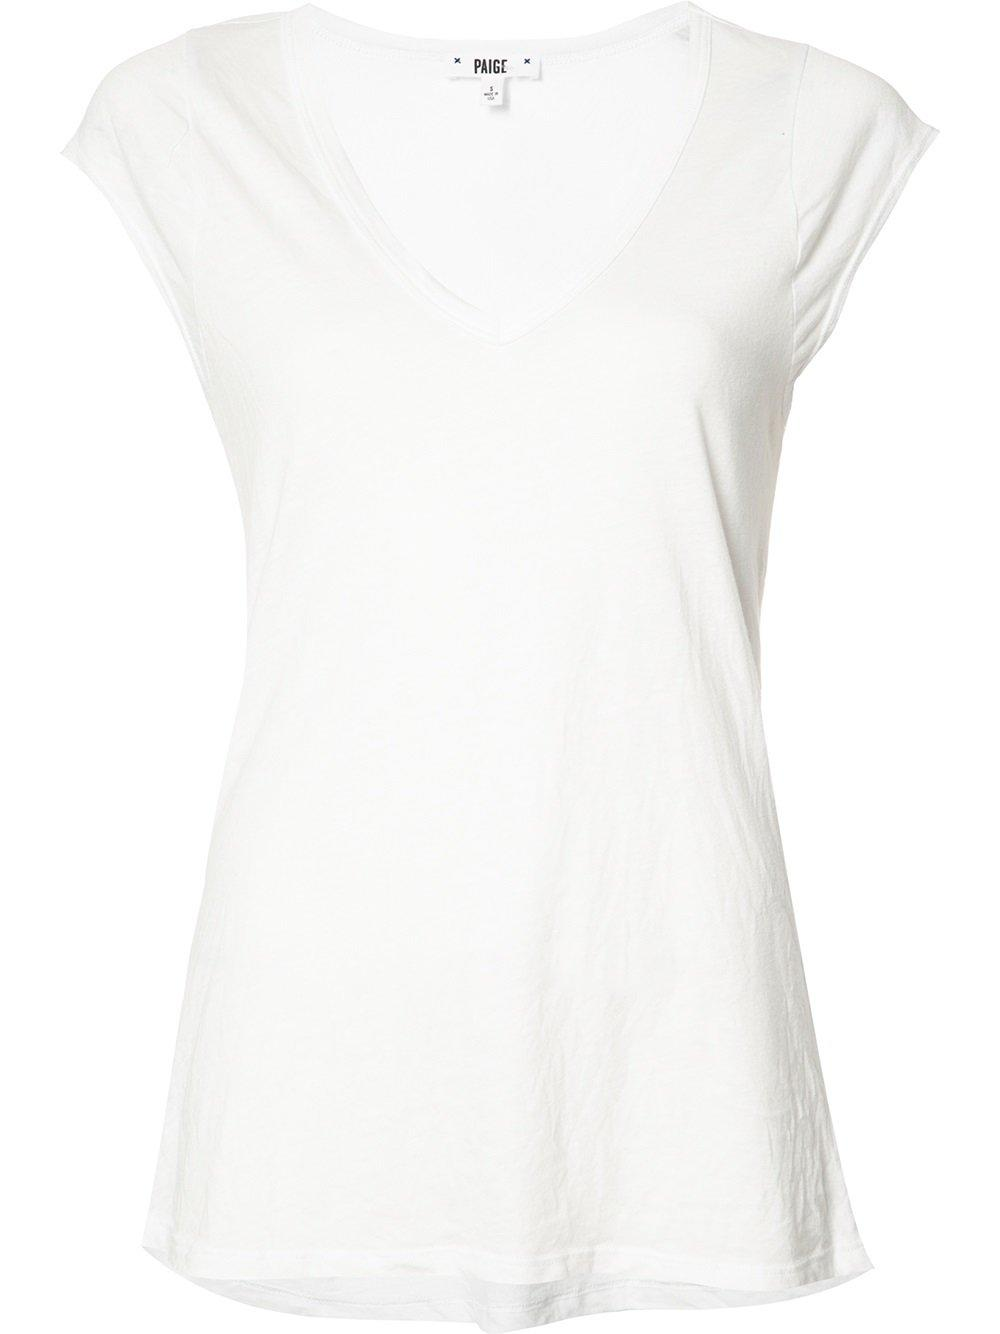 Paige Scoop Neck T Shirt In White Lyst